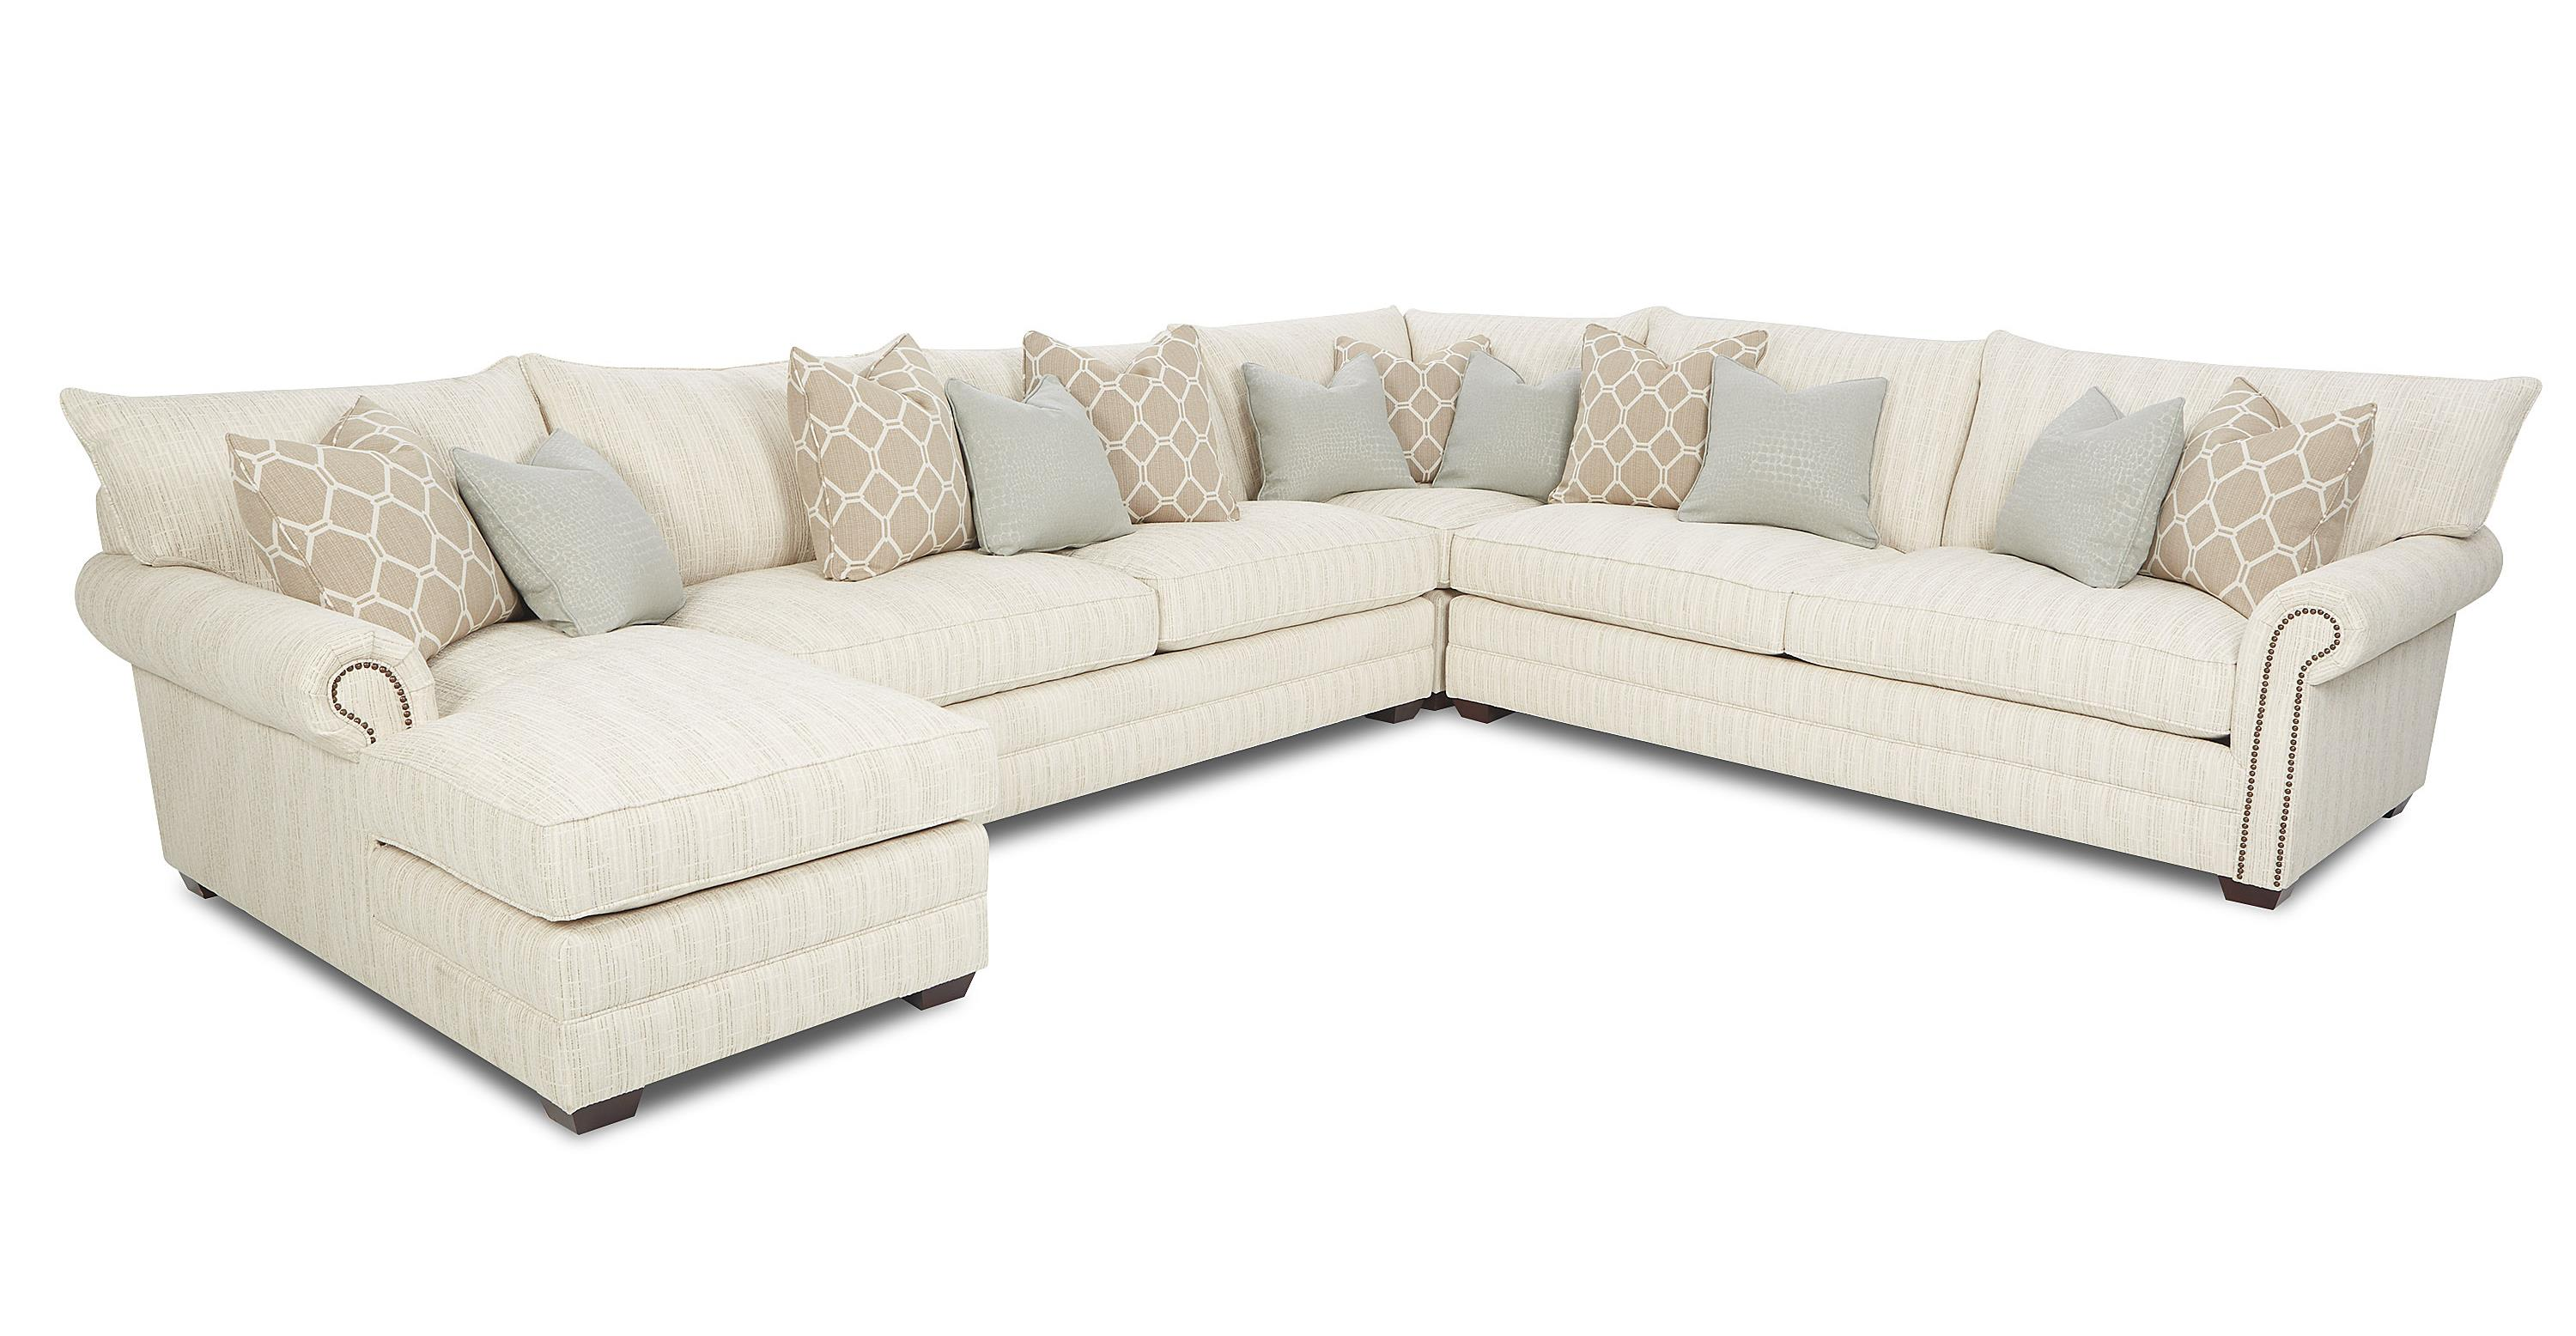 Traditional sectional sofa with nailhead trim and chaise for Traditional sofas and loveseats